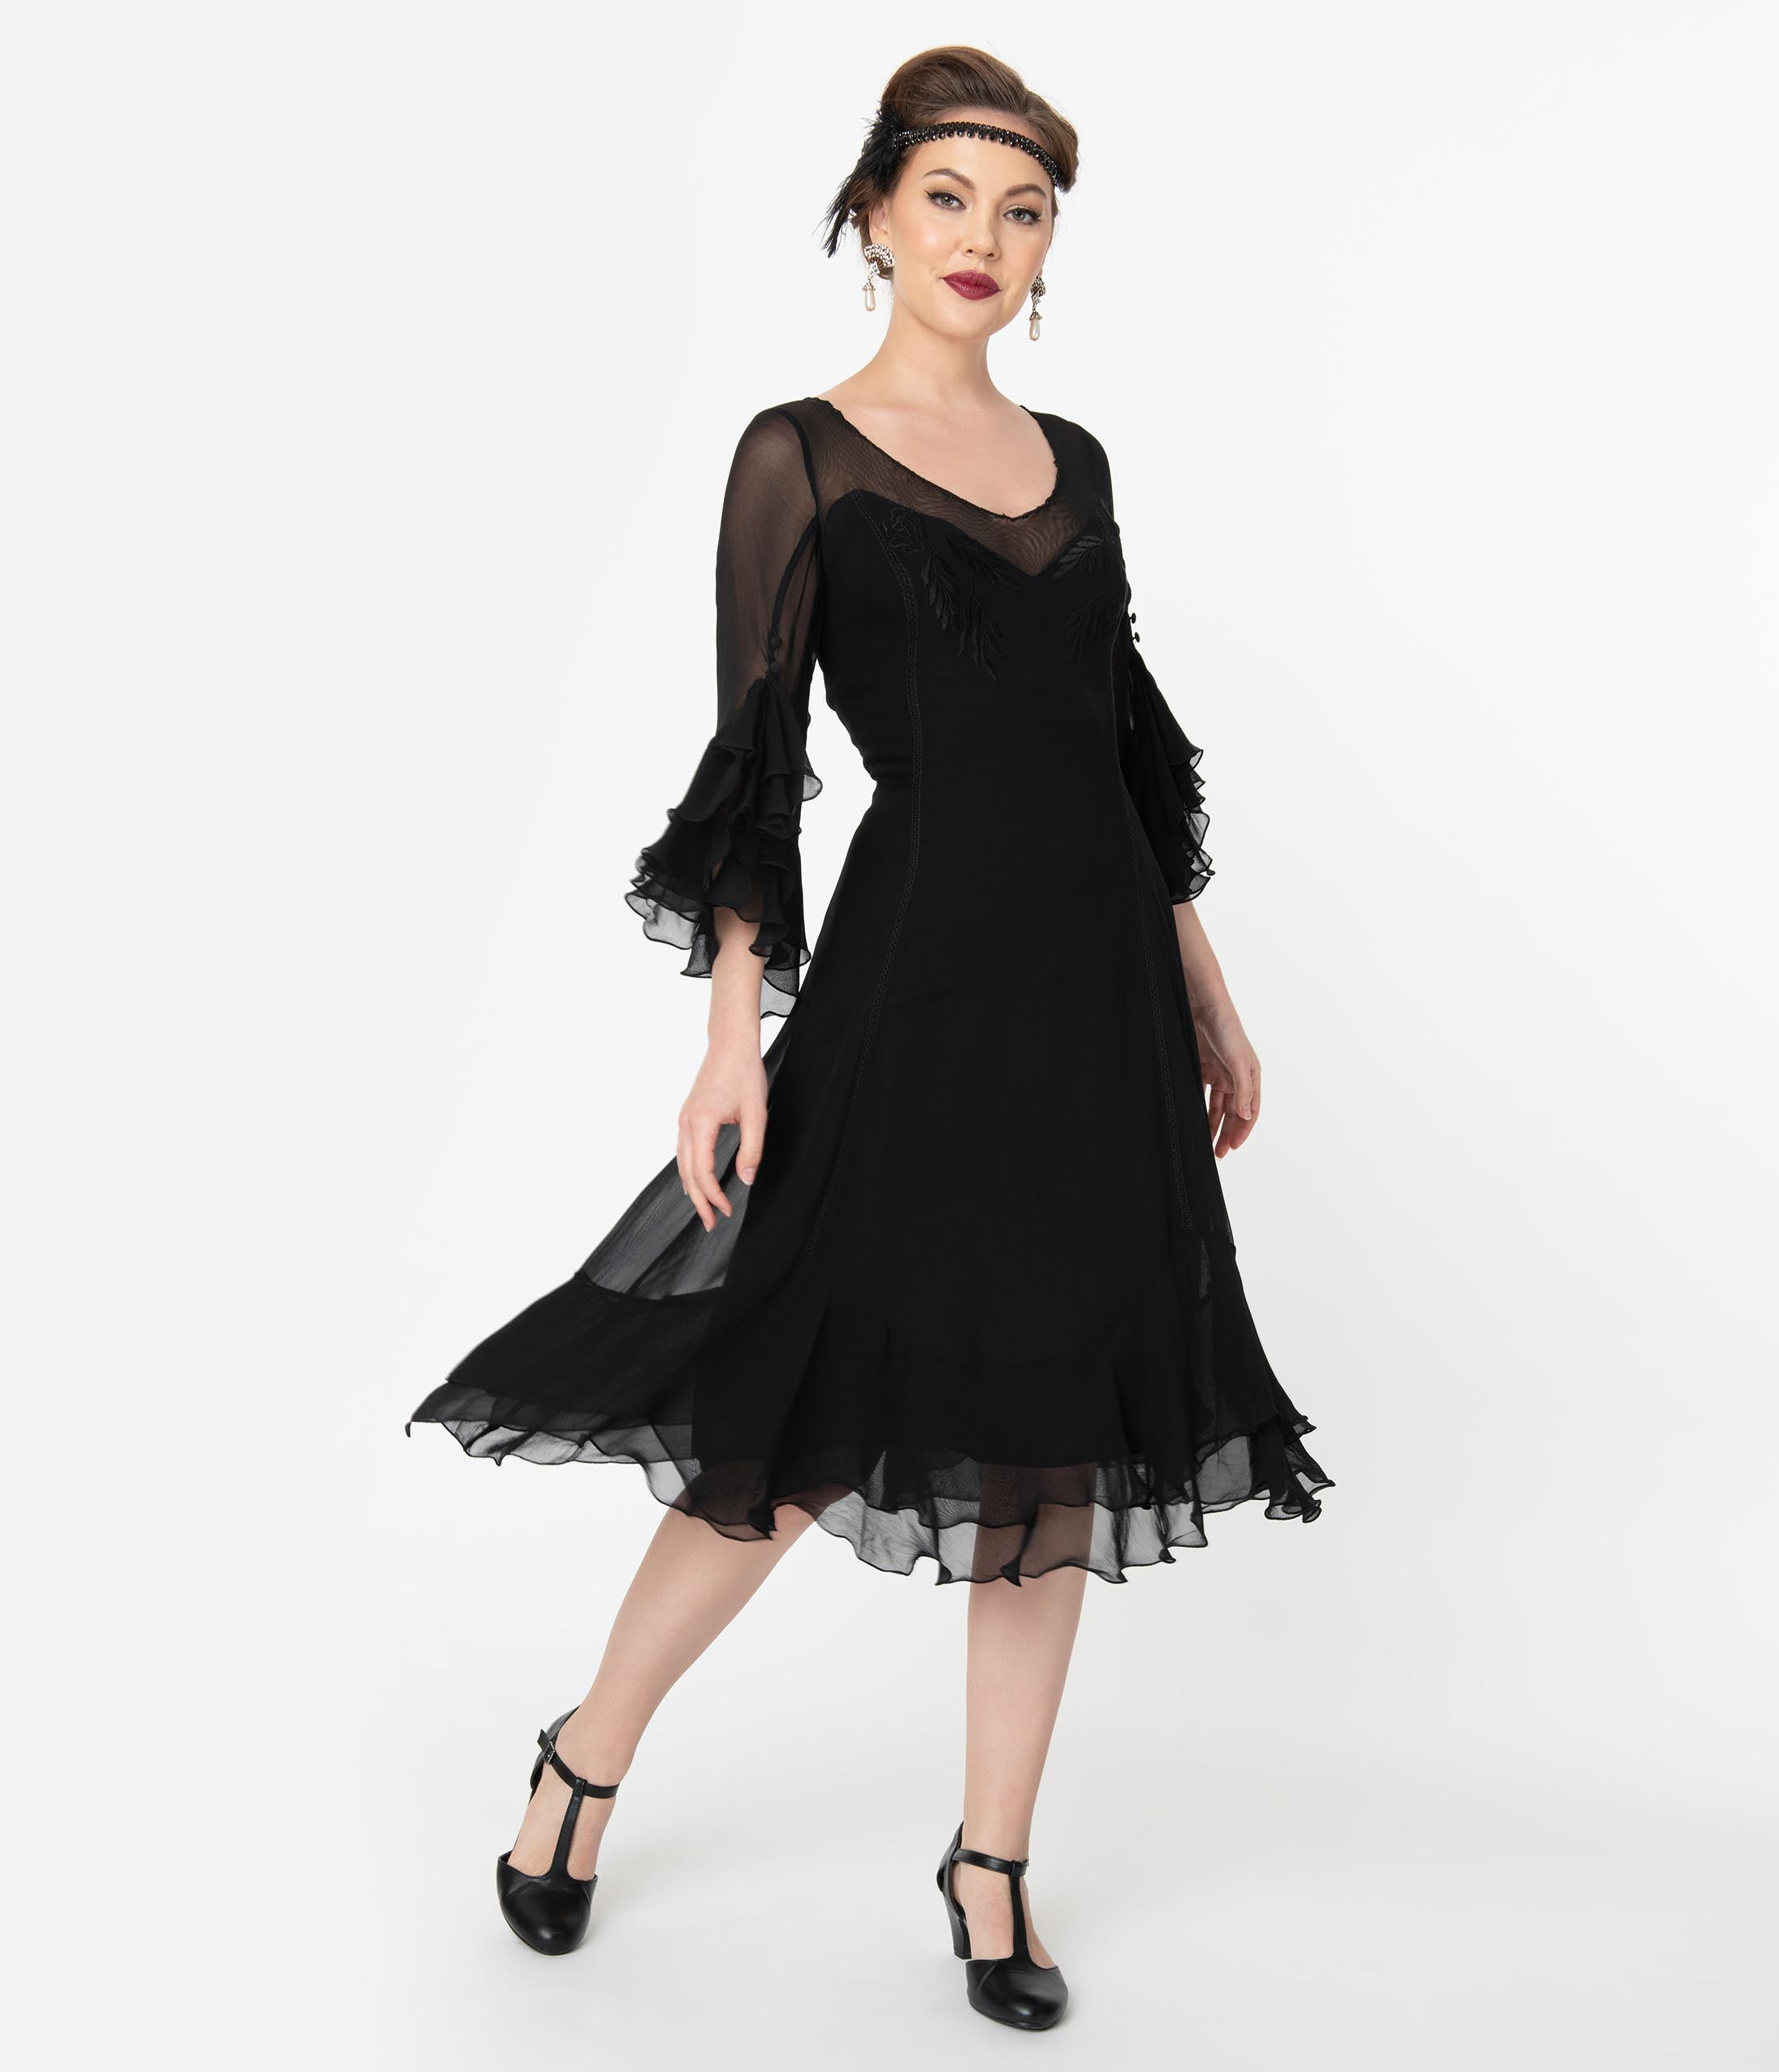 1930s Day Dresses, Afternoon Dresses History 1920S Style Black Mesh Ruffle Leonardo Midi Dress $218.00 AT vintagedancer.com